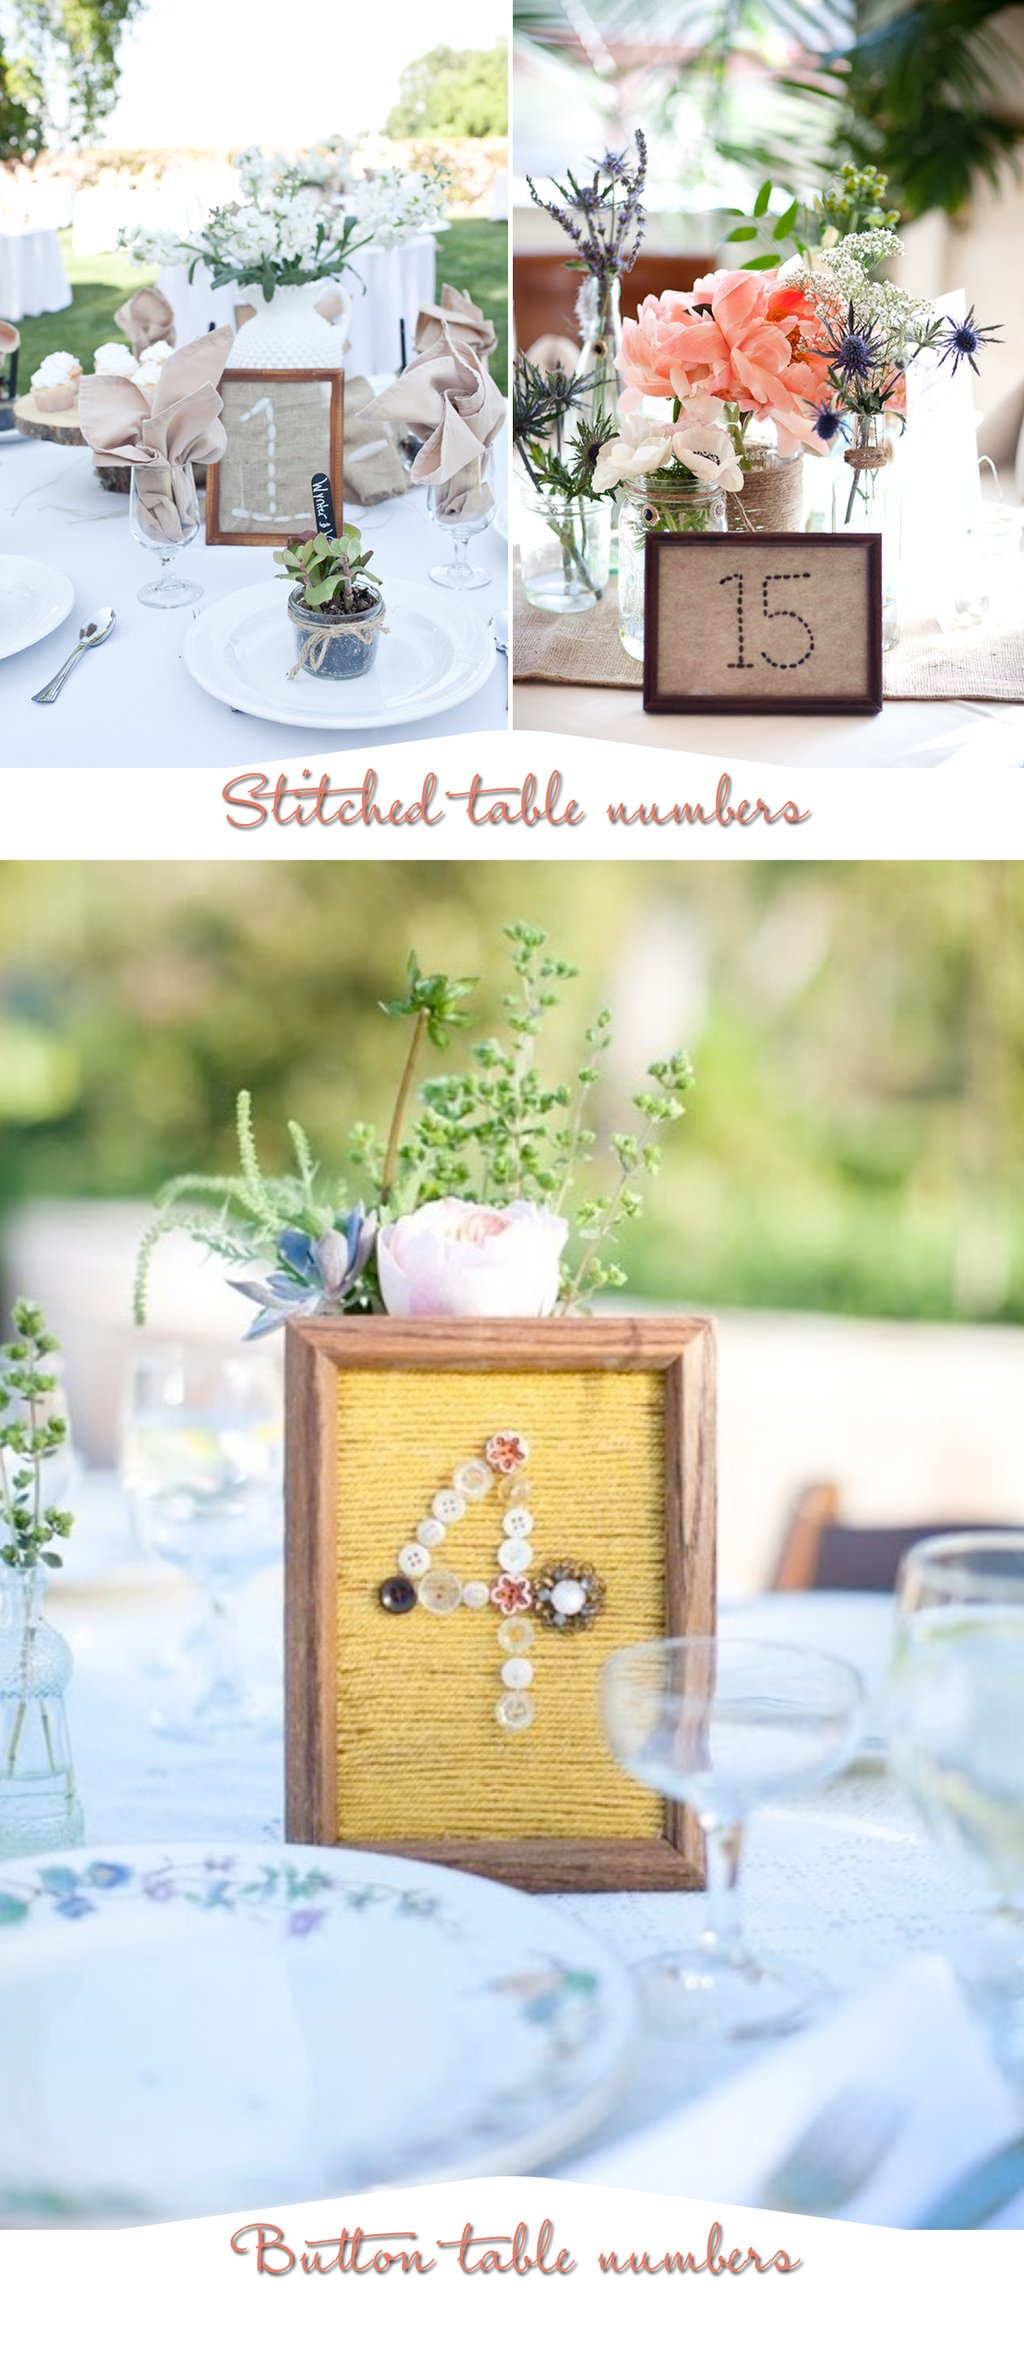 Unique-wedding-guestbook-ideas-homespun-diy-wedding-ideas.full